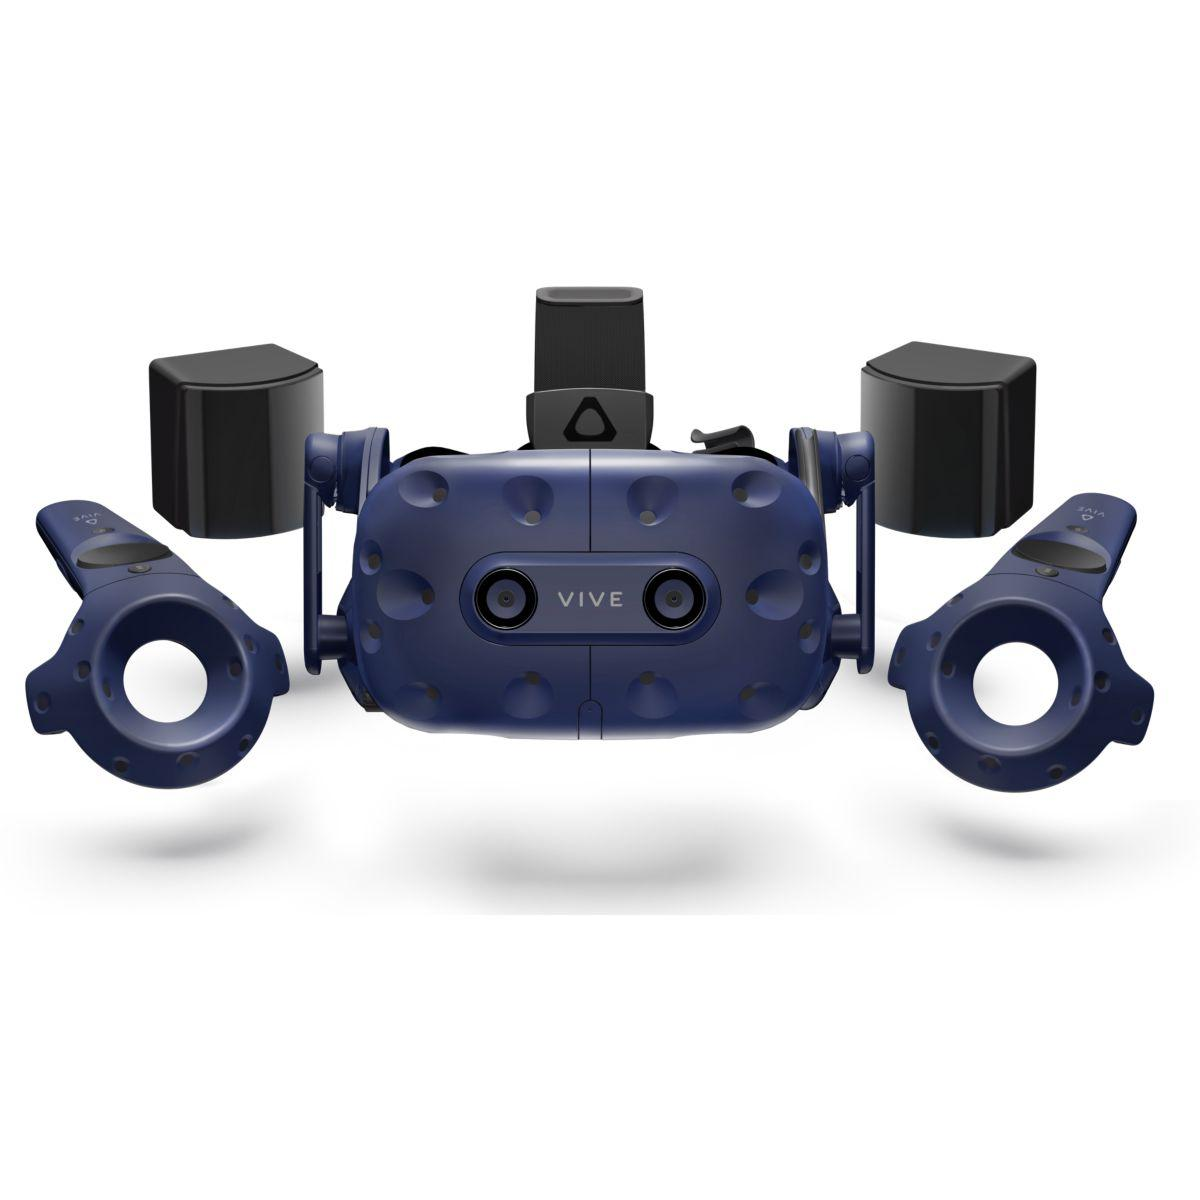 Casque de r�alit� virtuelle htc vive pro full kit (photo)